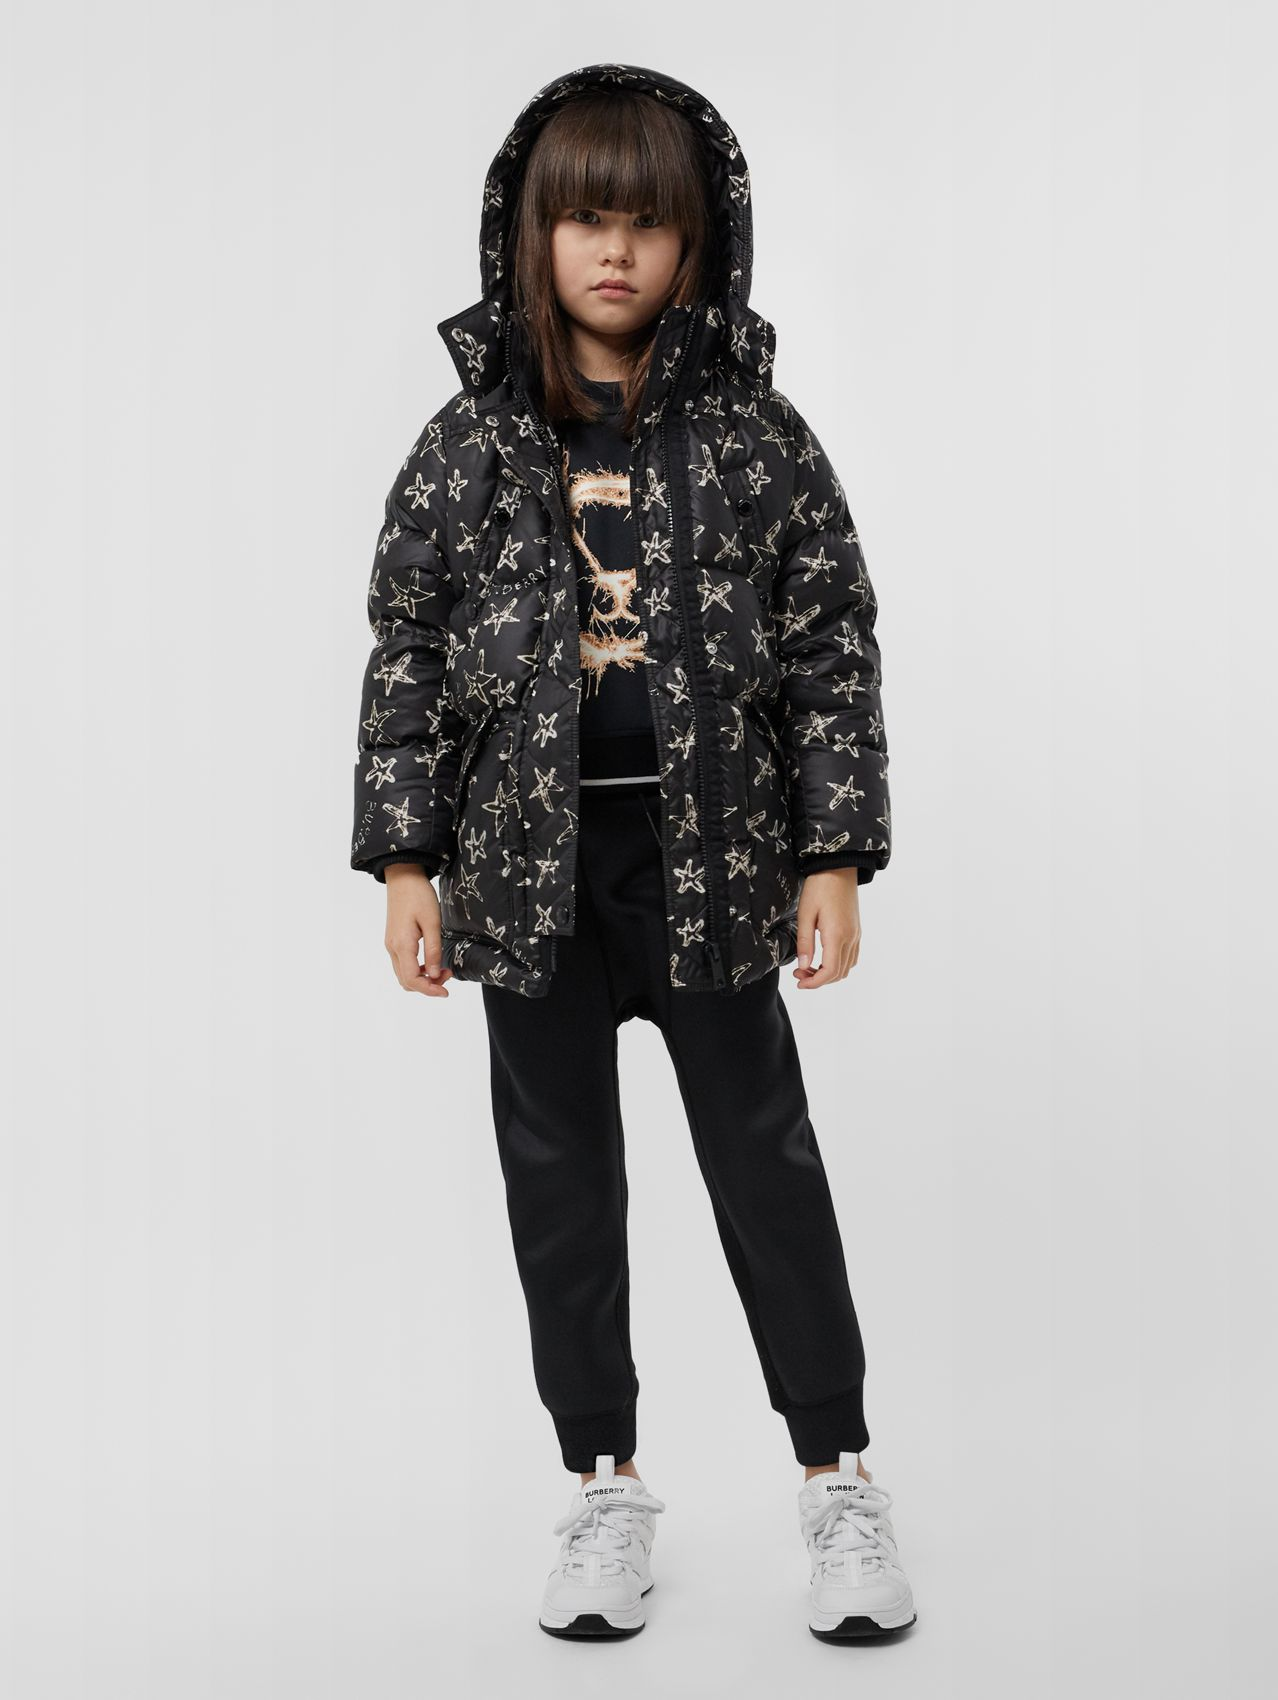 Sparkler Print Hooded Puffer Coat in Black